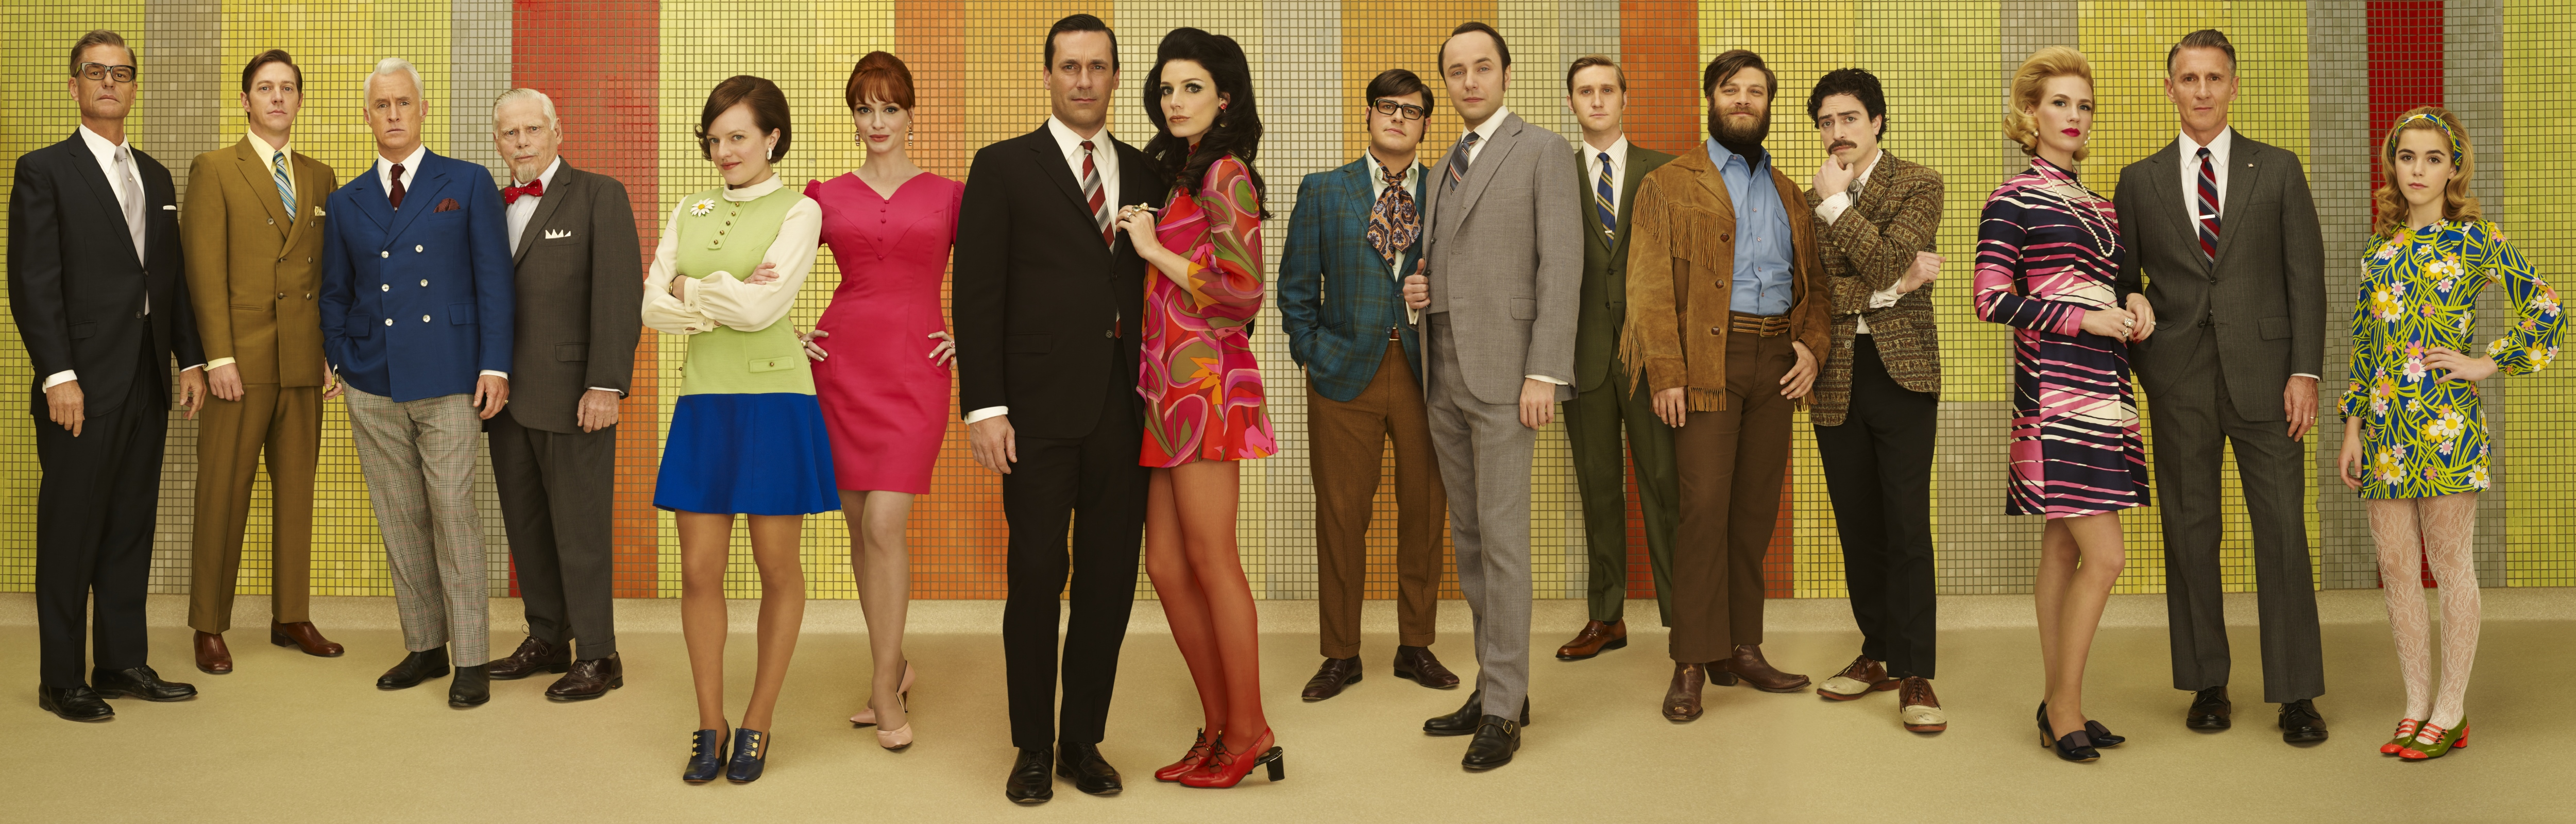 Mad-Men-Season-7-cast-2